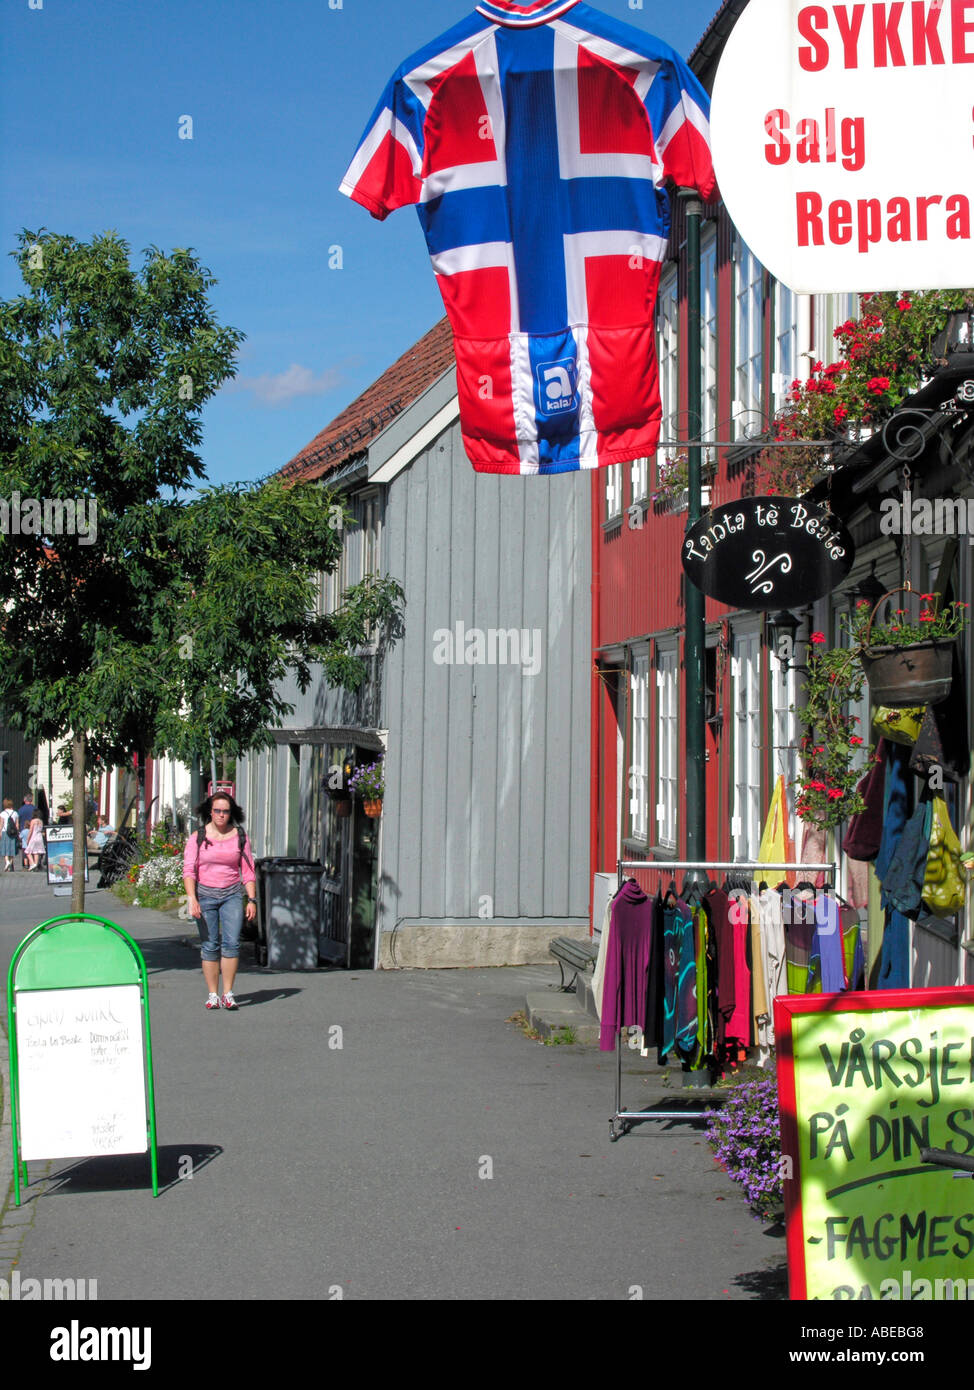 Trondheim storefronts facades of old timber houses woodhouses with advertising shield for bike bicycle shop with trikot jersey - Stock Image